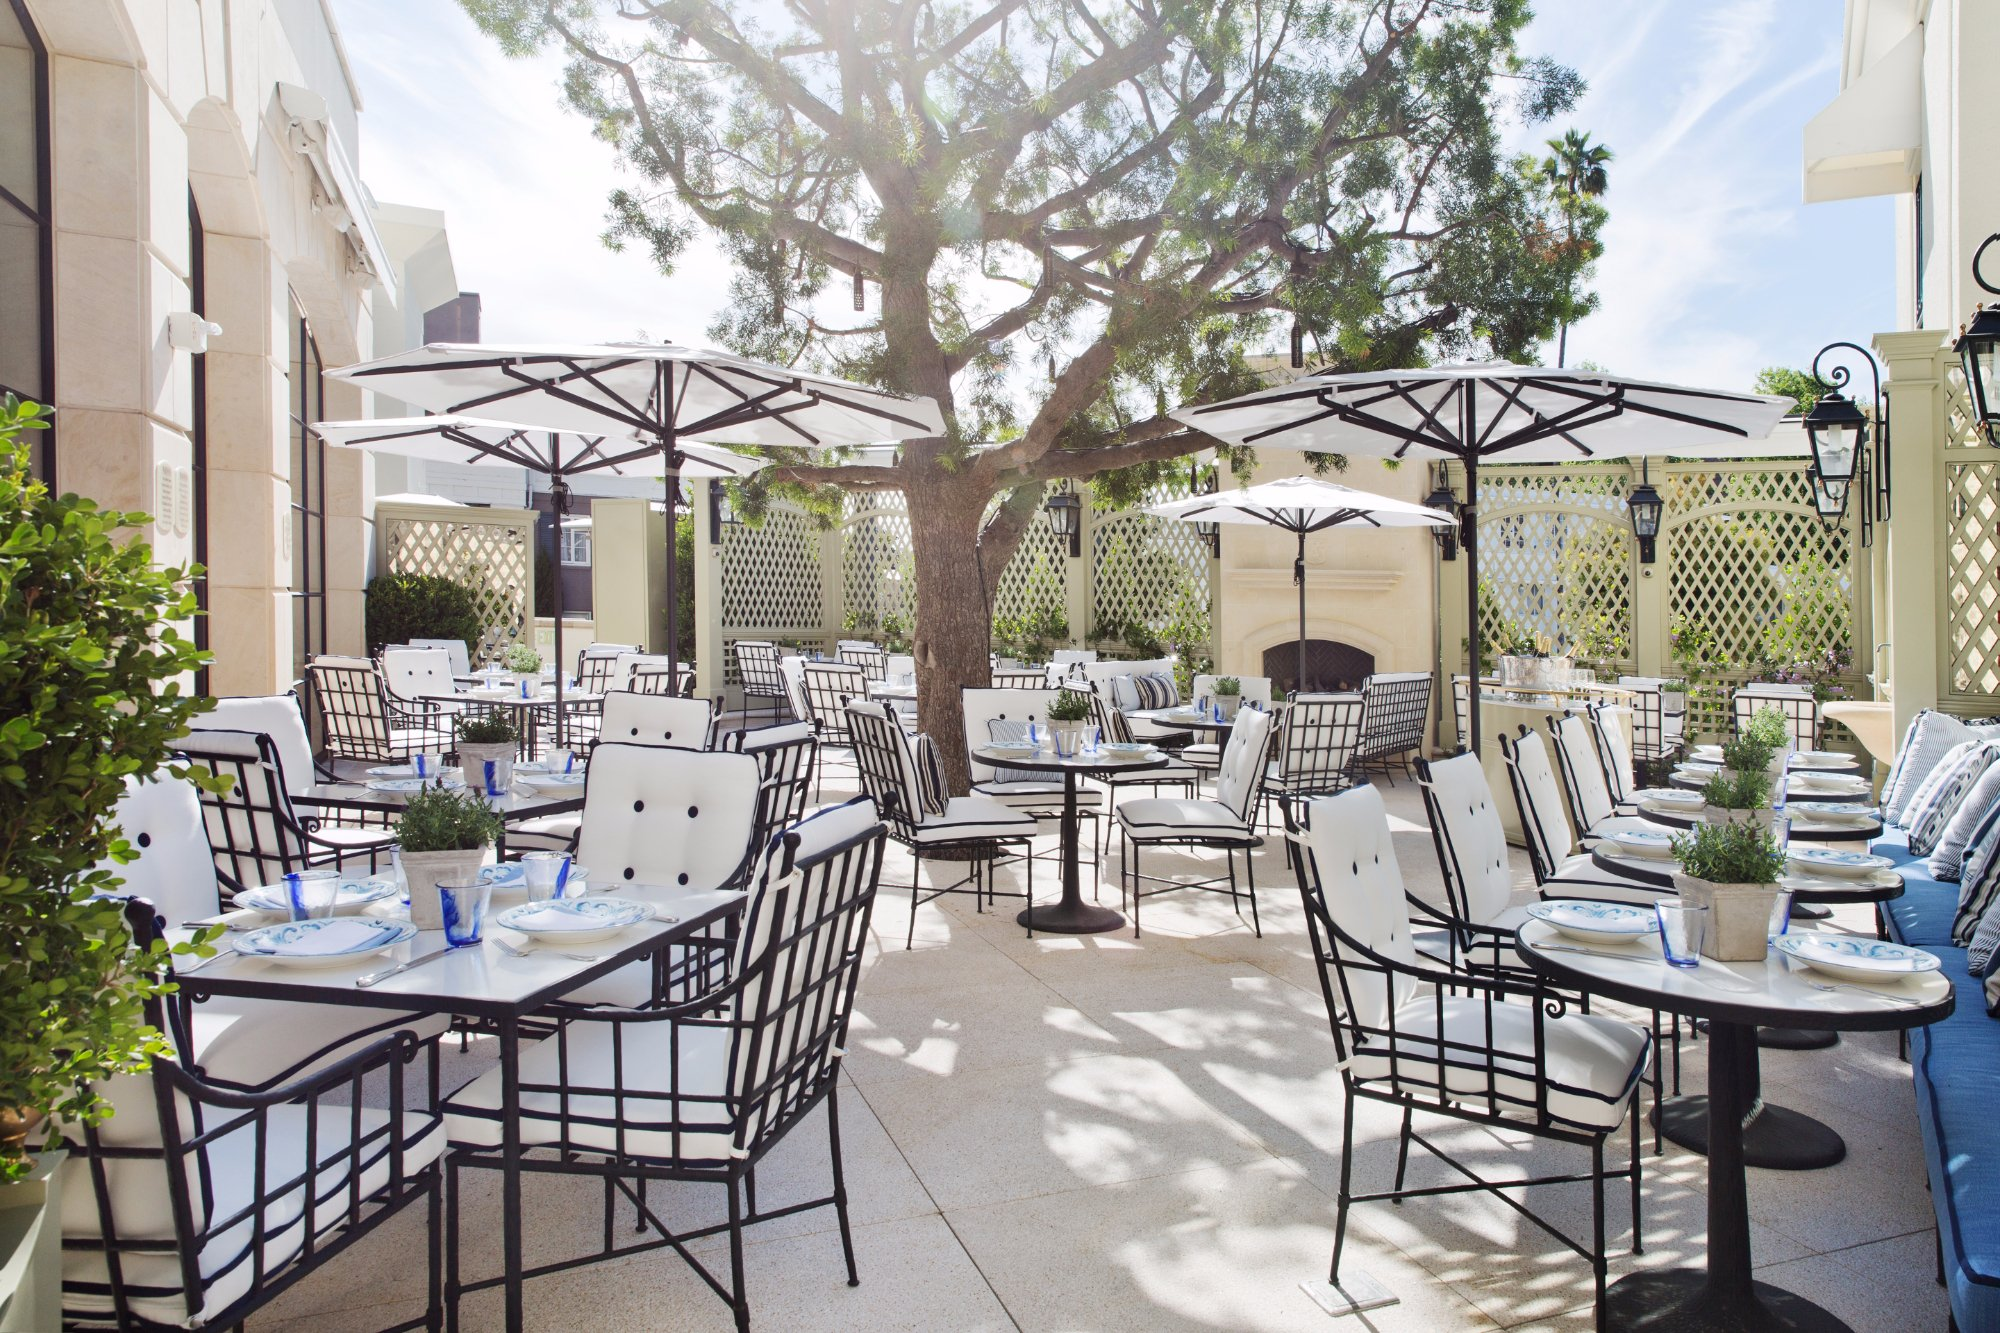 the belvedere beverly hills beverly hills menu prices all photos 84